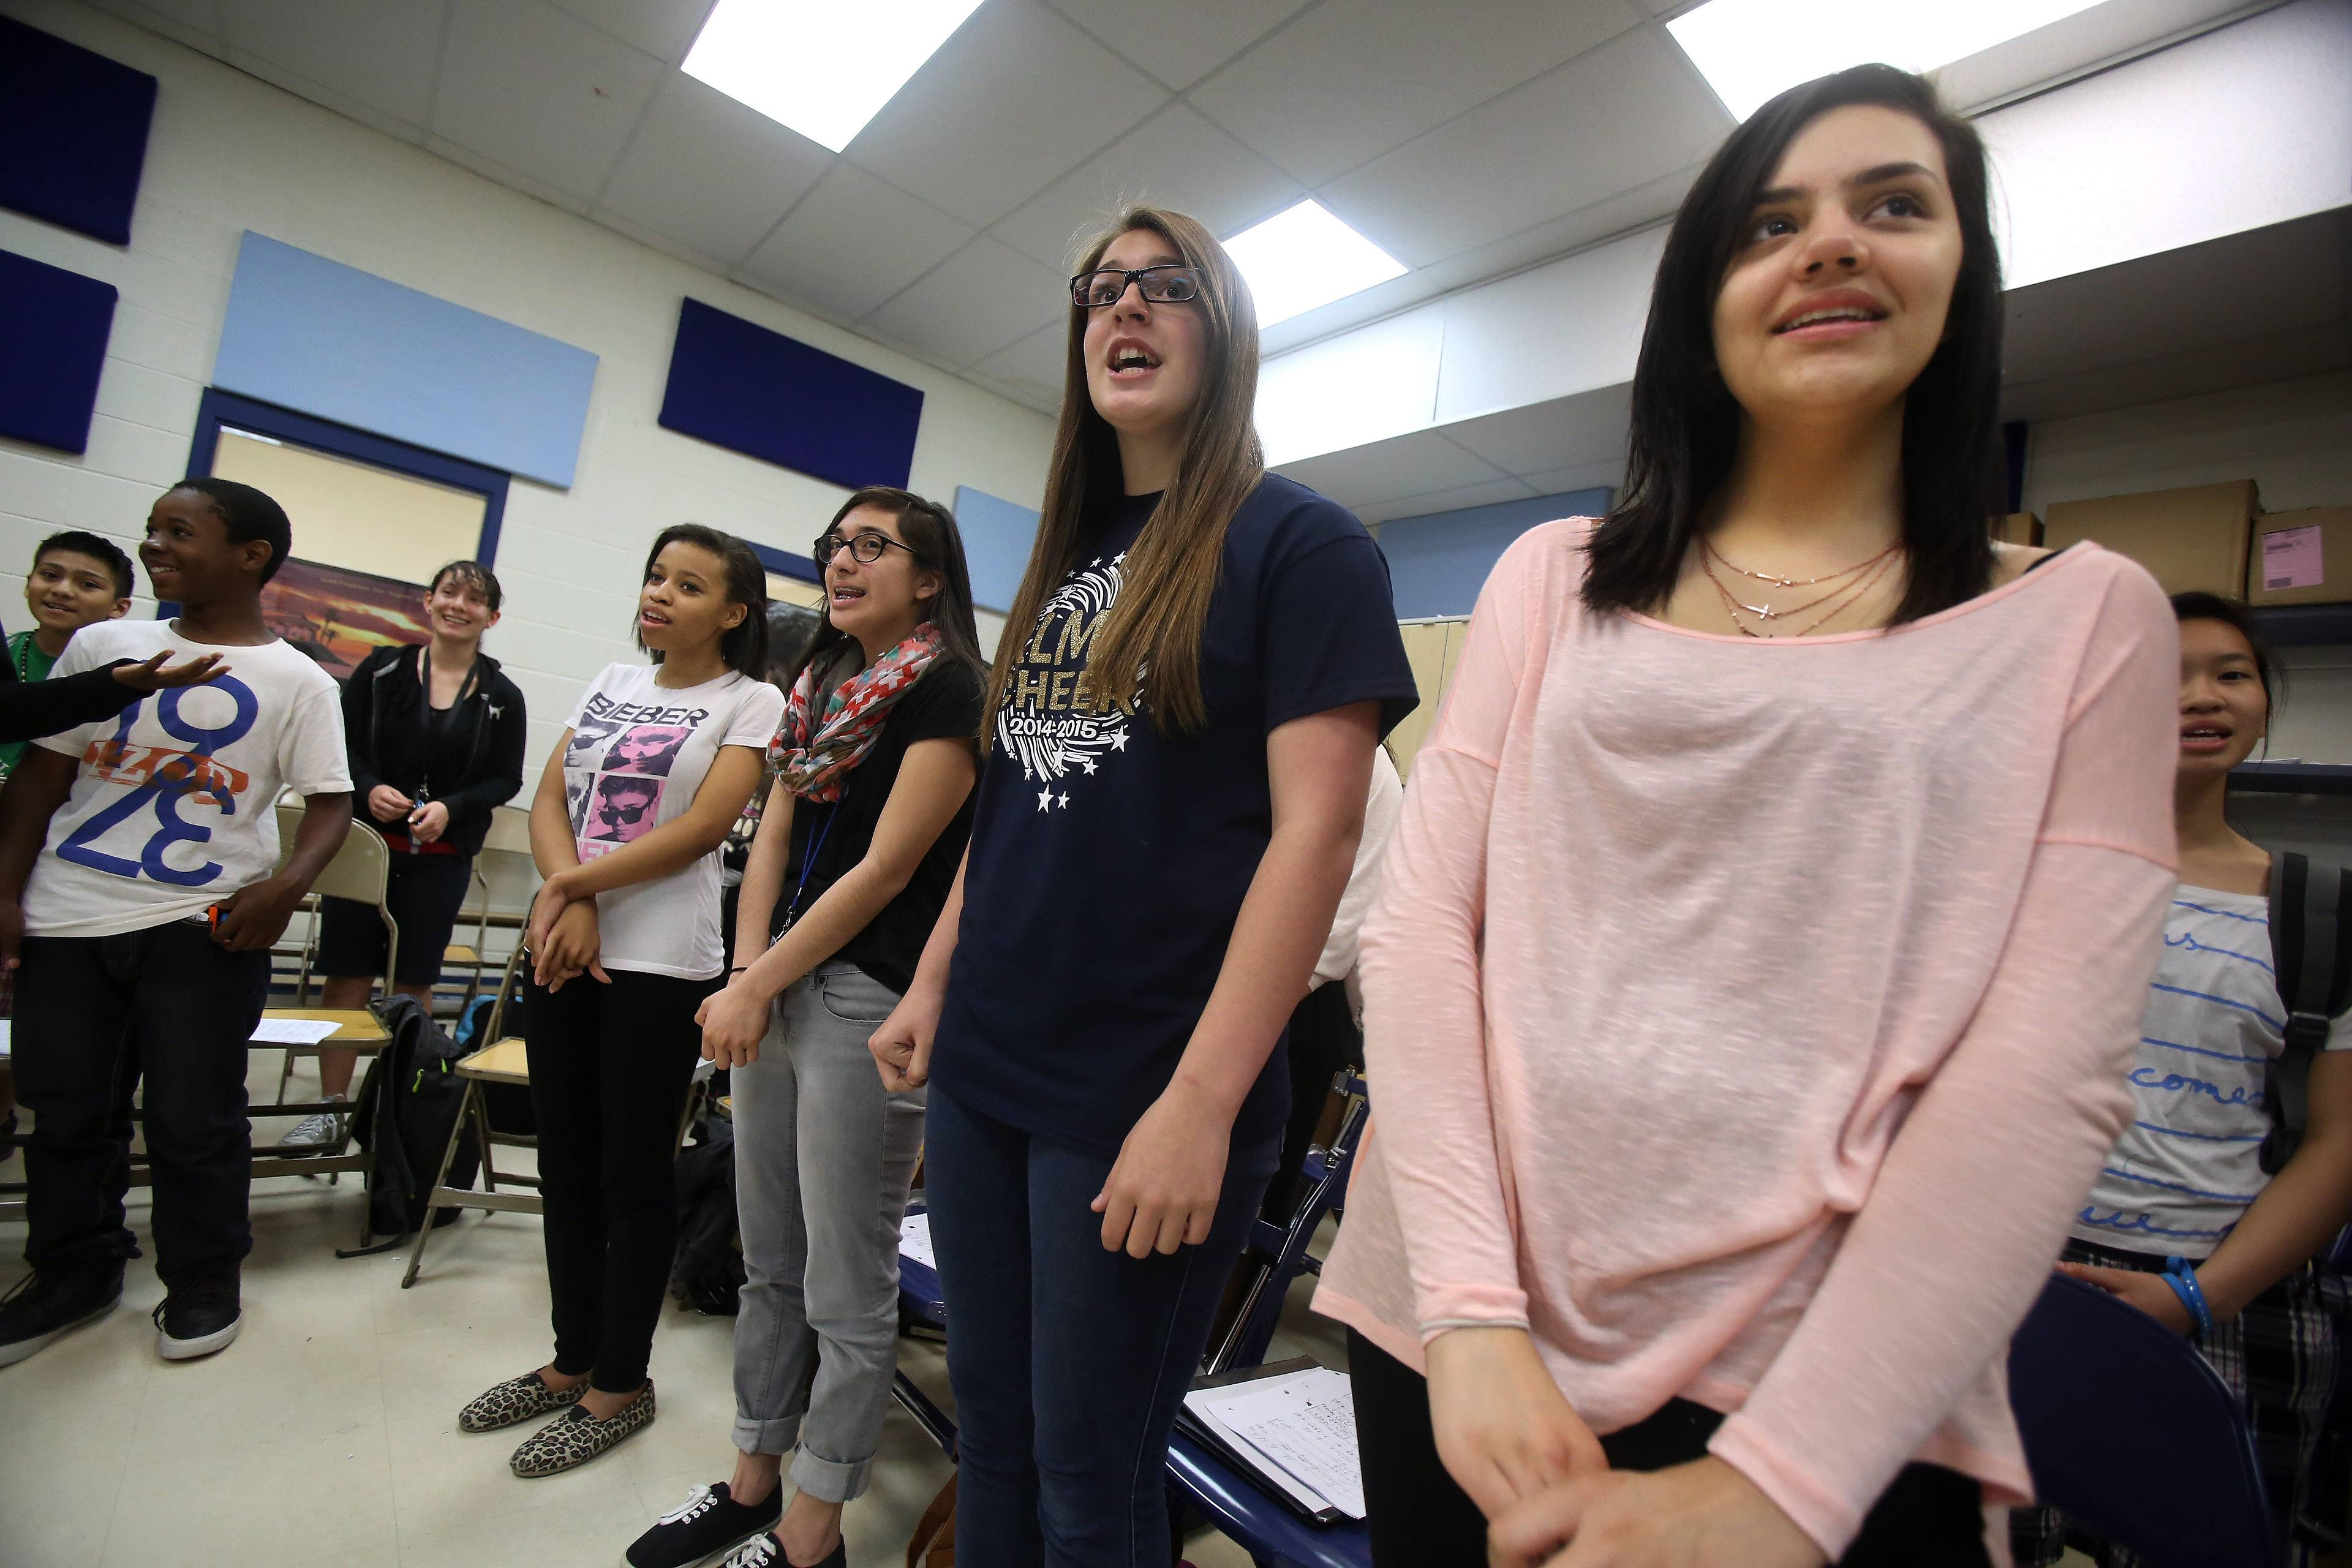 Choir students Cecilia Sanchez, right, and Hannah Jewitt sing with the rest of the children as Round Lake Middle School teacher Javier Diaz conducts.